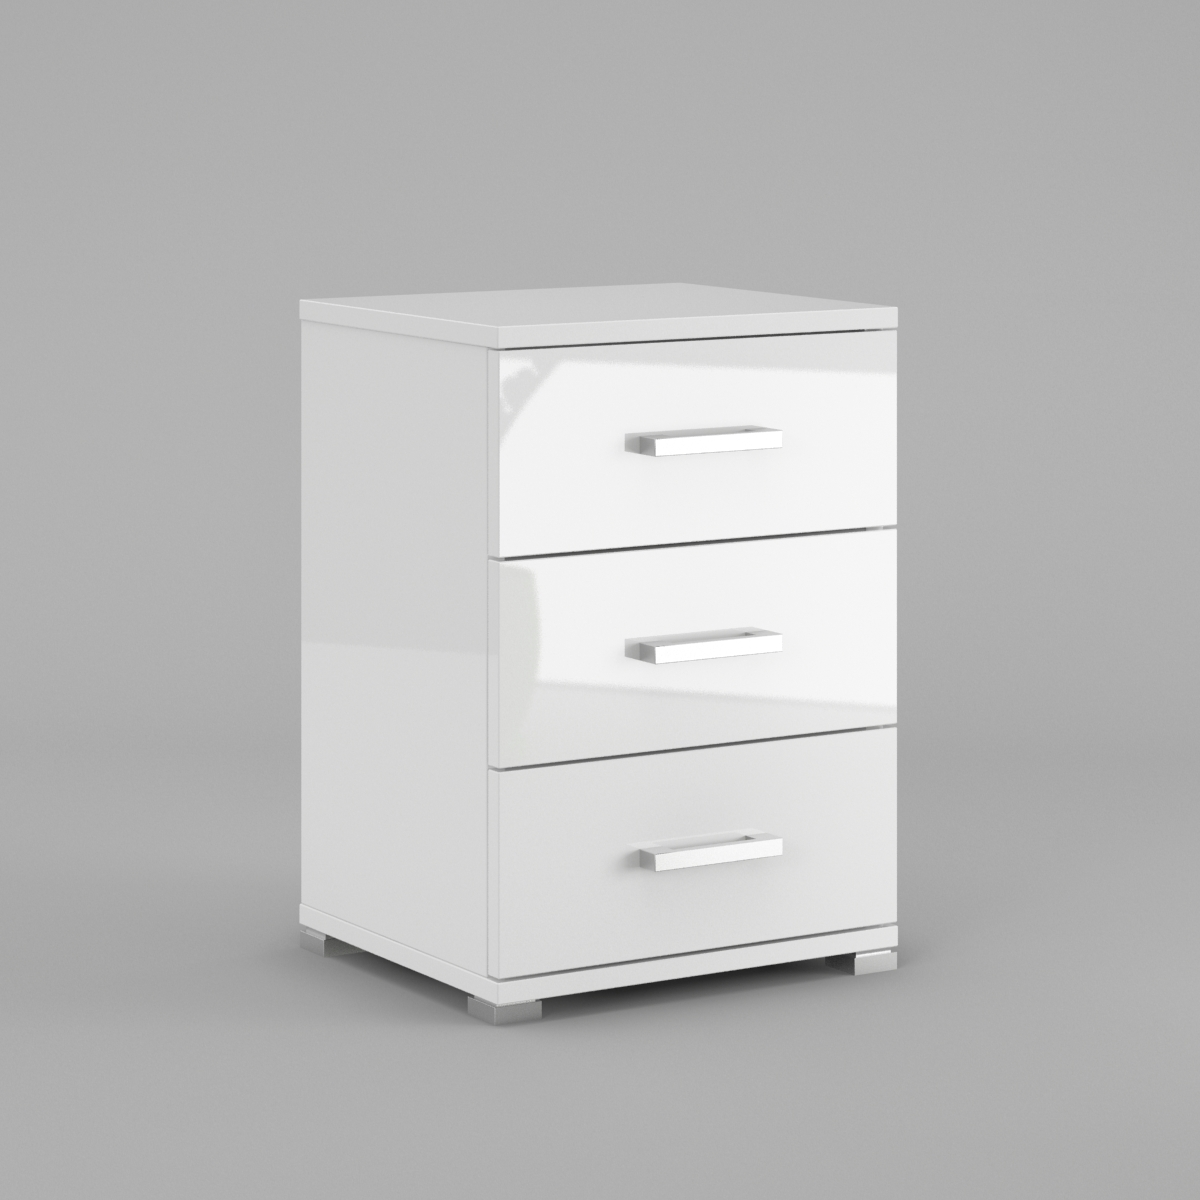 White Bedside Drawers Neli 3 Drawers Bedside Cabinets White High Gloss And